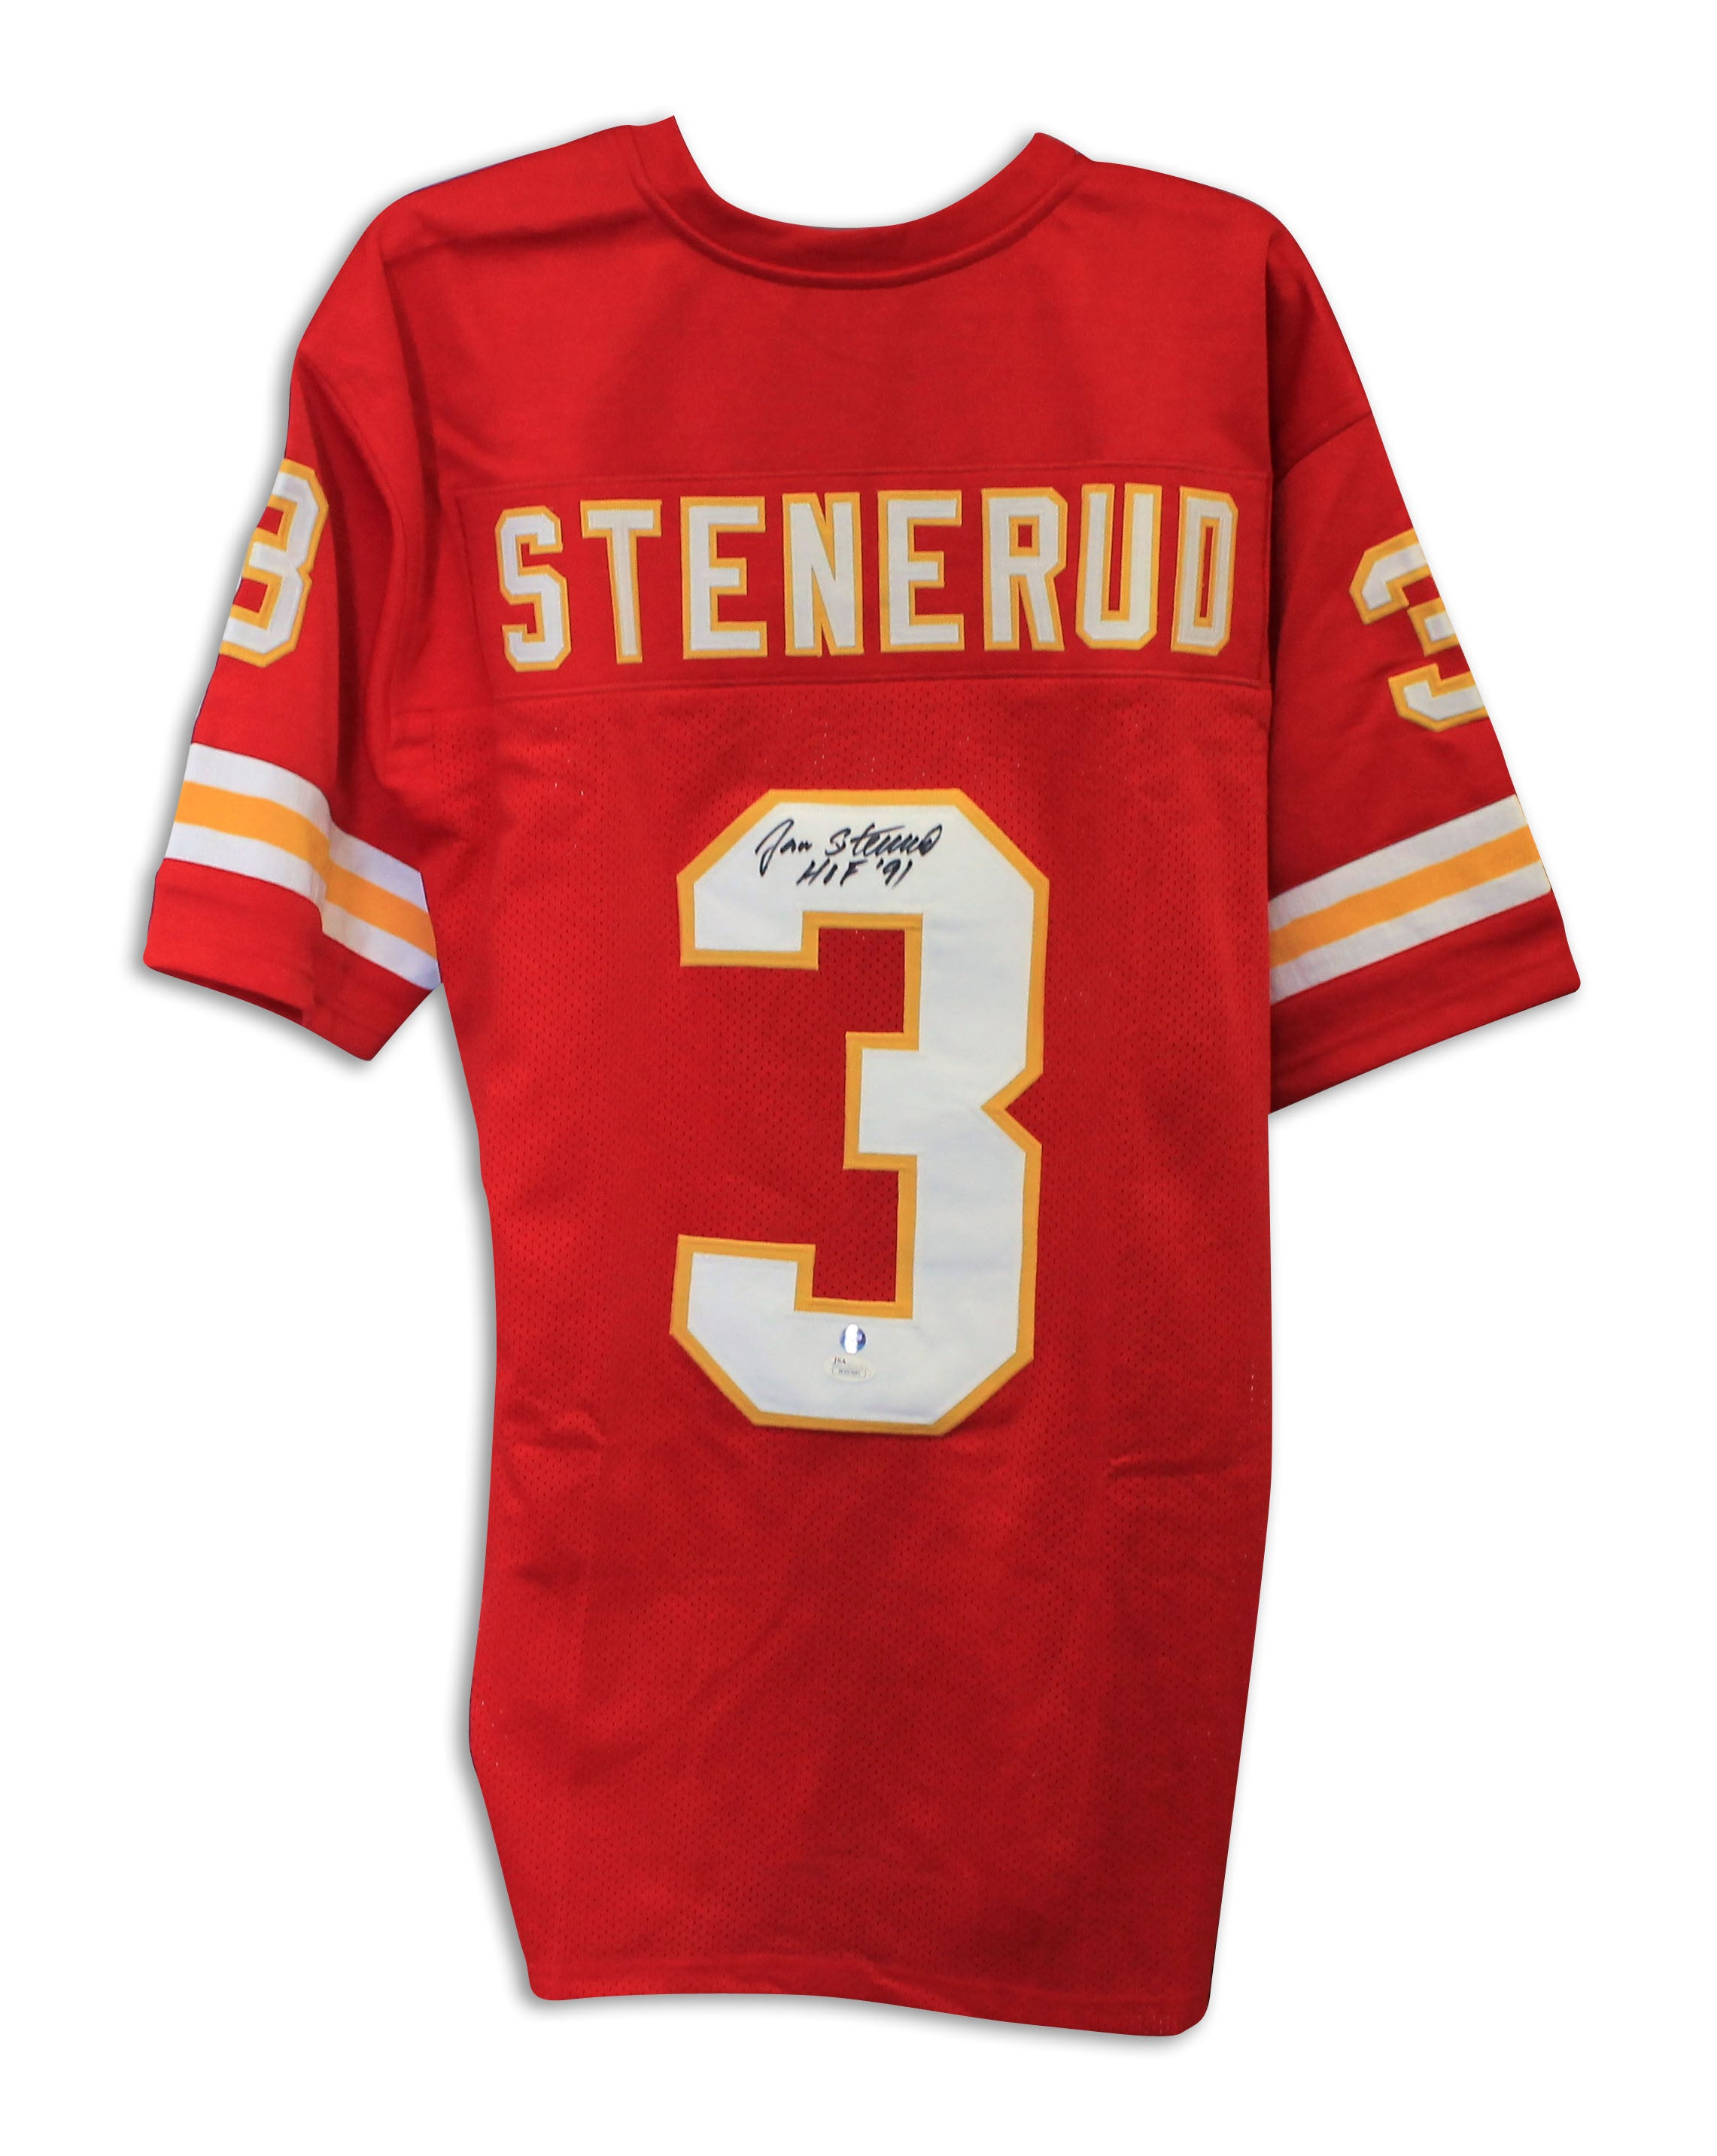 Jan Stenerud Kansas City Chiefs Autographed Red Throwback Jersey Inscribed